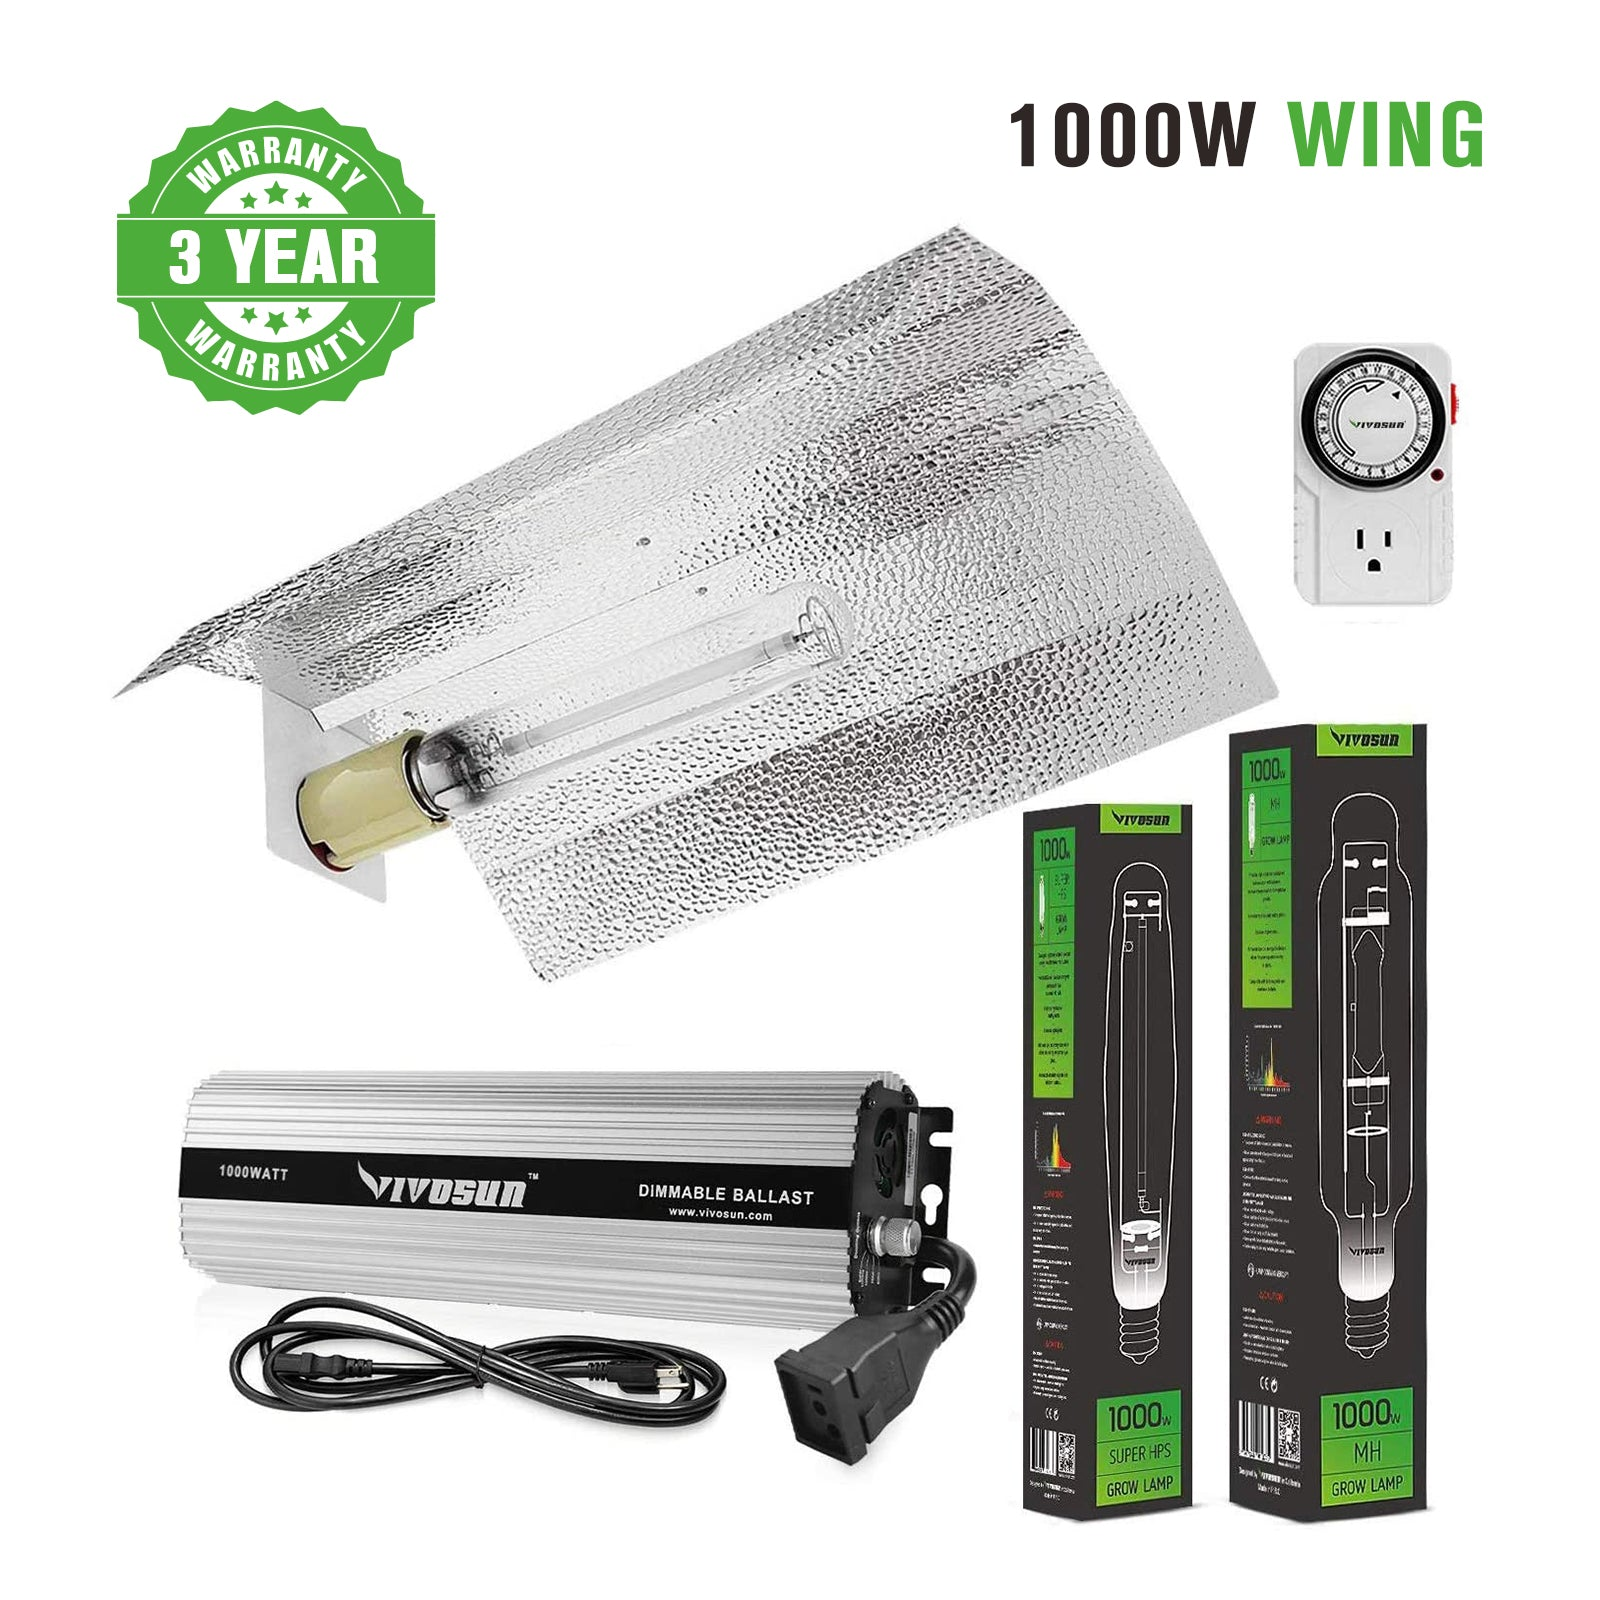 VIVOSUN Hydroponic 1000W HPS MH Grow Light Wing Reflector Kit